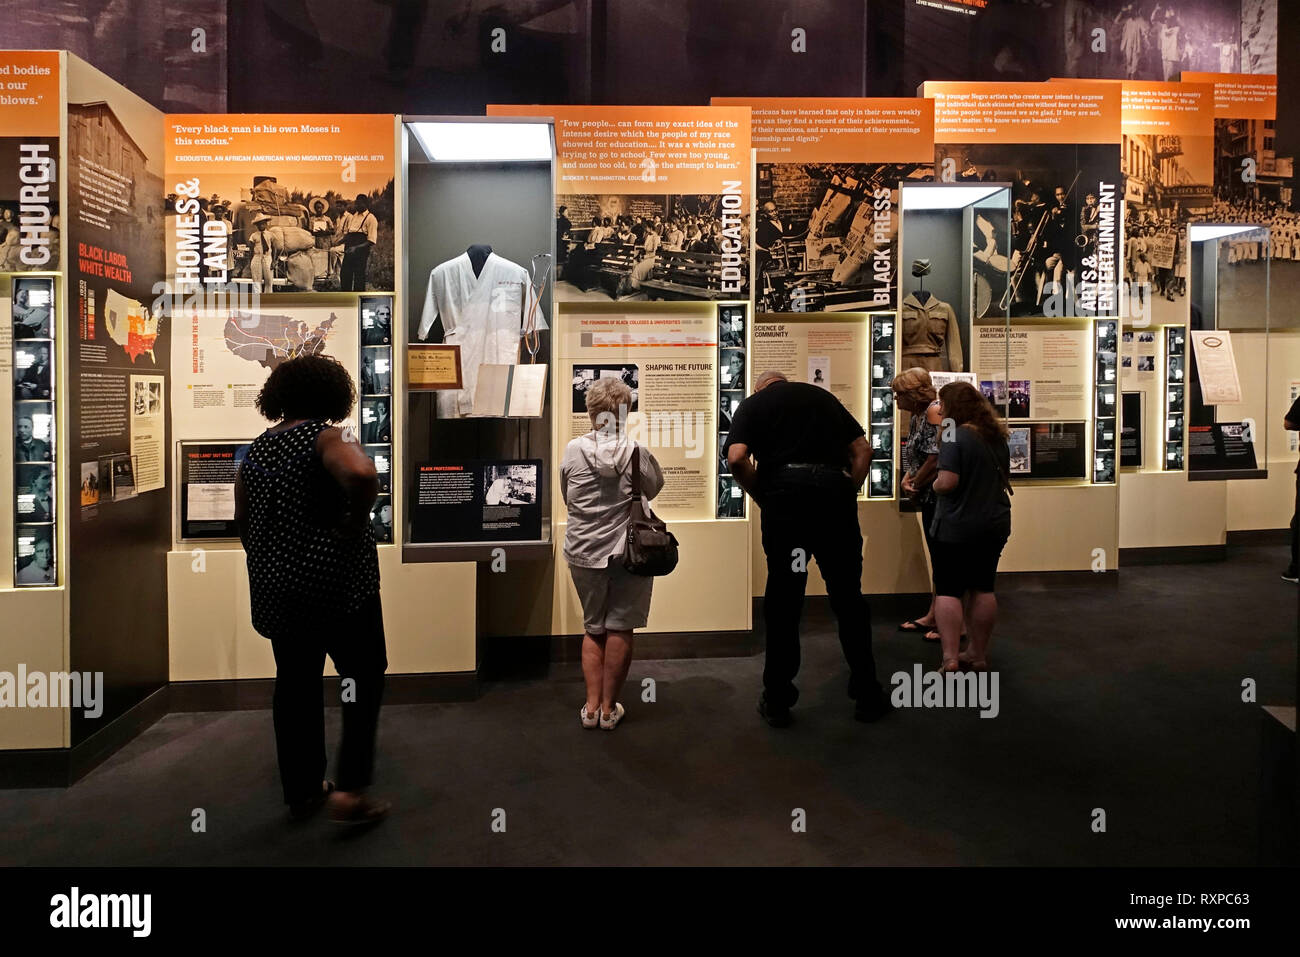 National Civil rights museum Memphis Tennessee - Stock Image